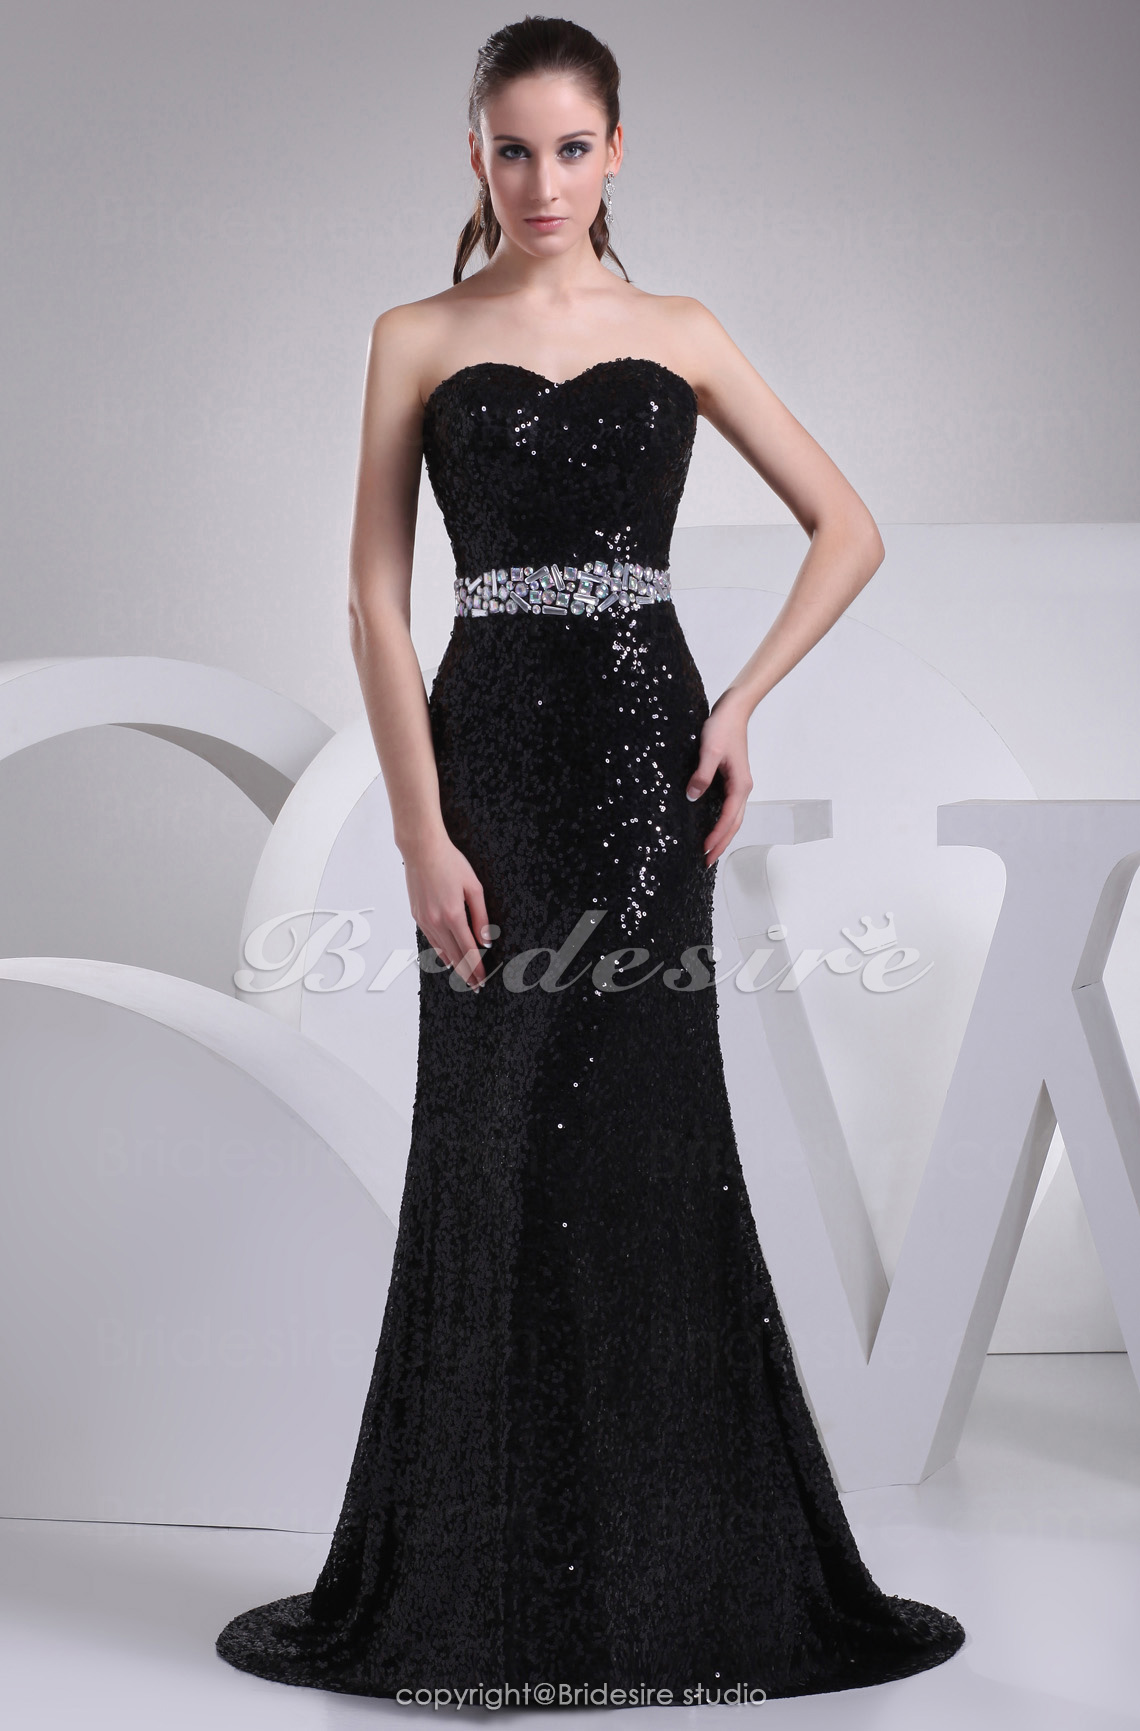 Trumpet/Mermaid Sweetheart Sweep Train Sleeveless Sequined Dress